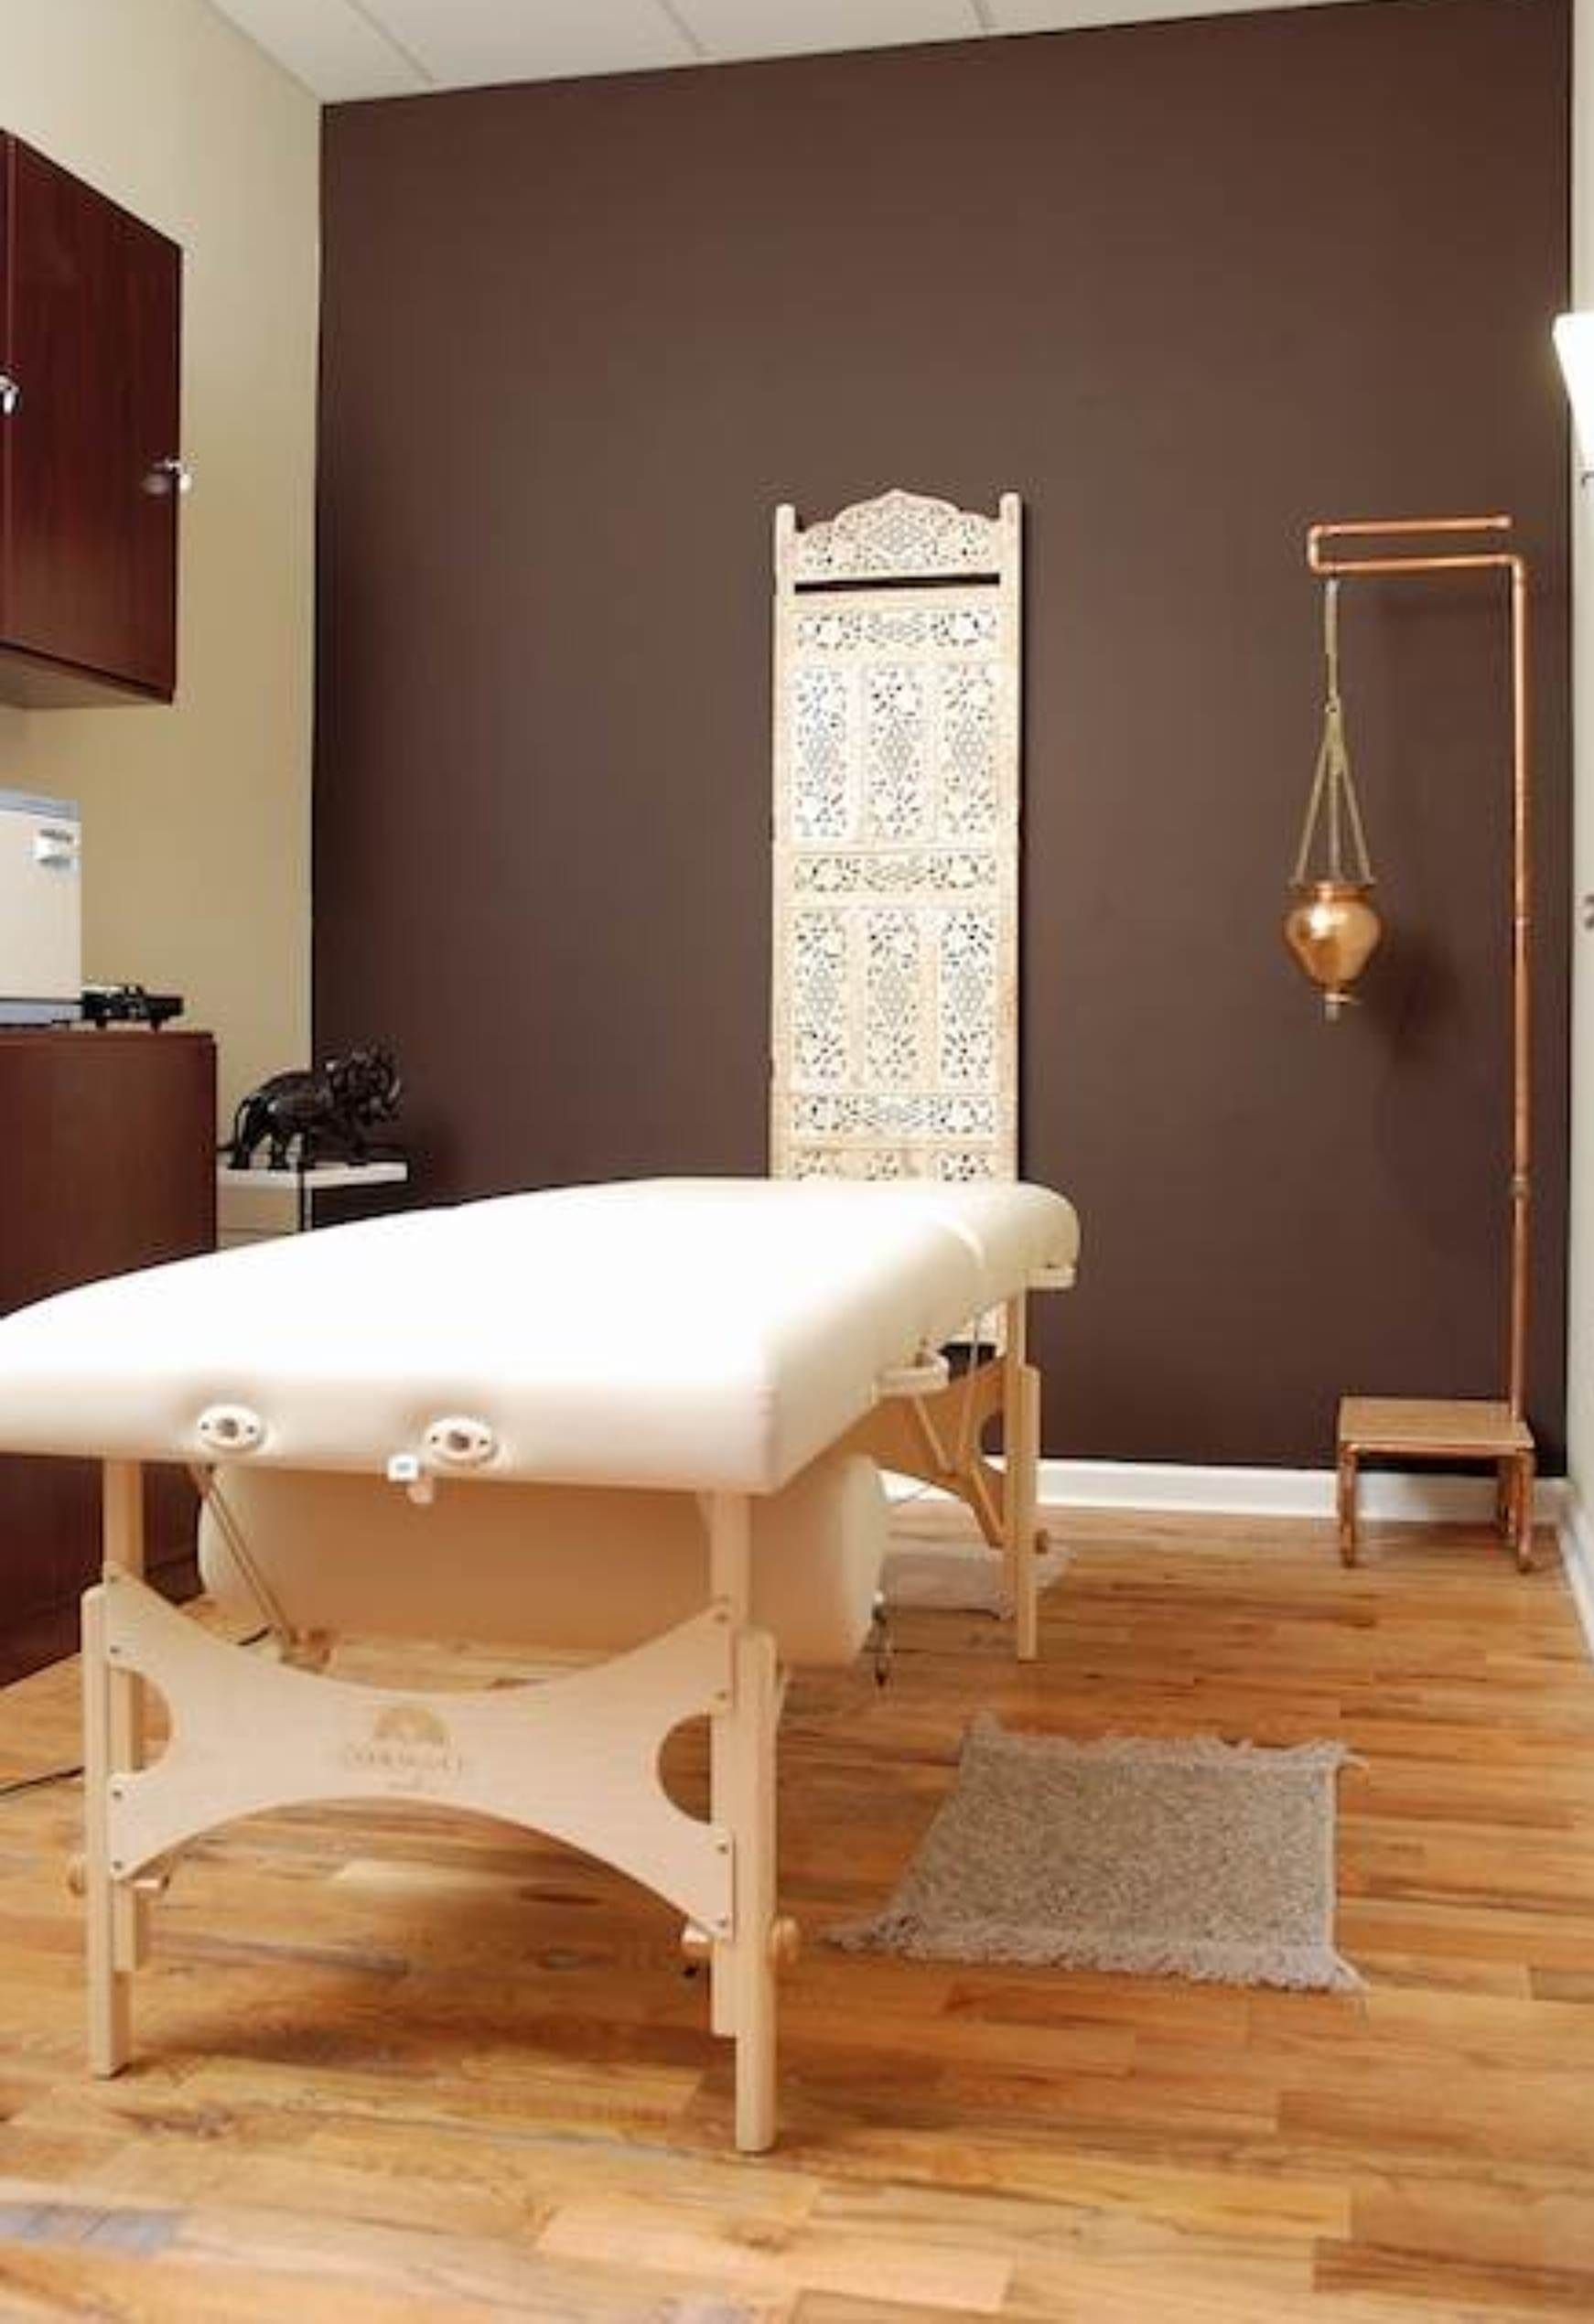 Decorating massage room ideas for the home pinterest for A design and color salon